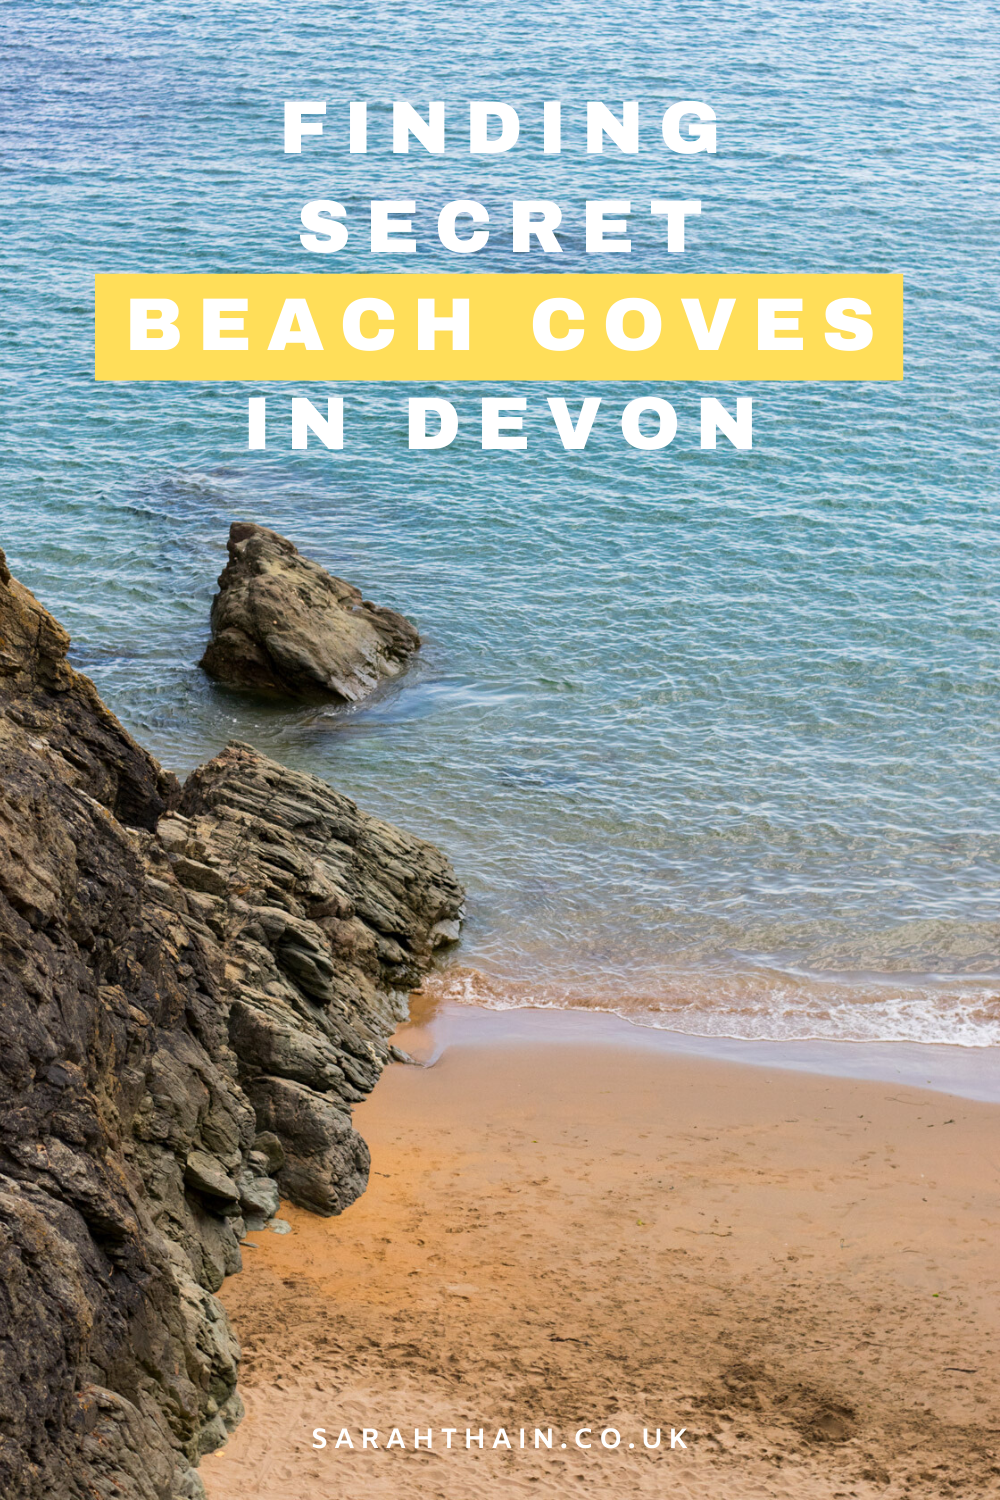 Finding Secret Beach Coves in Devon